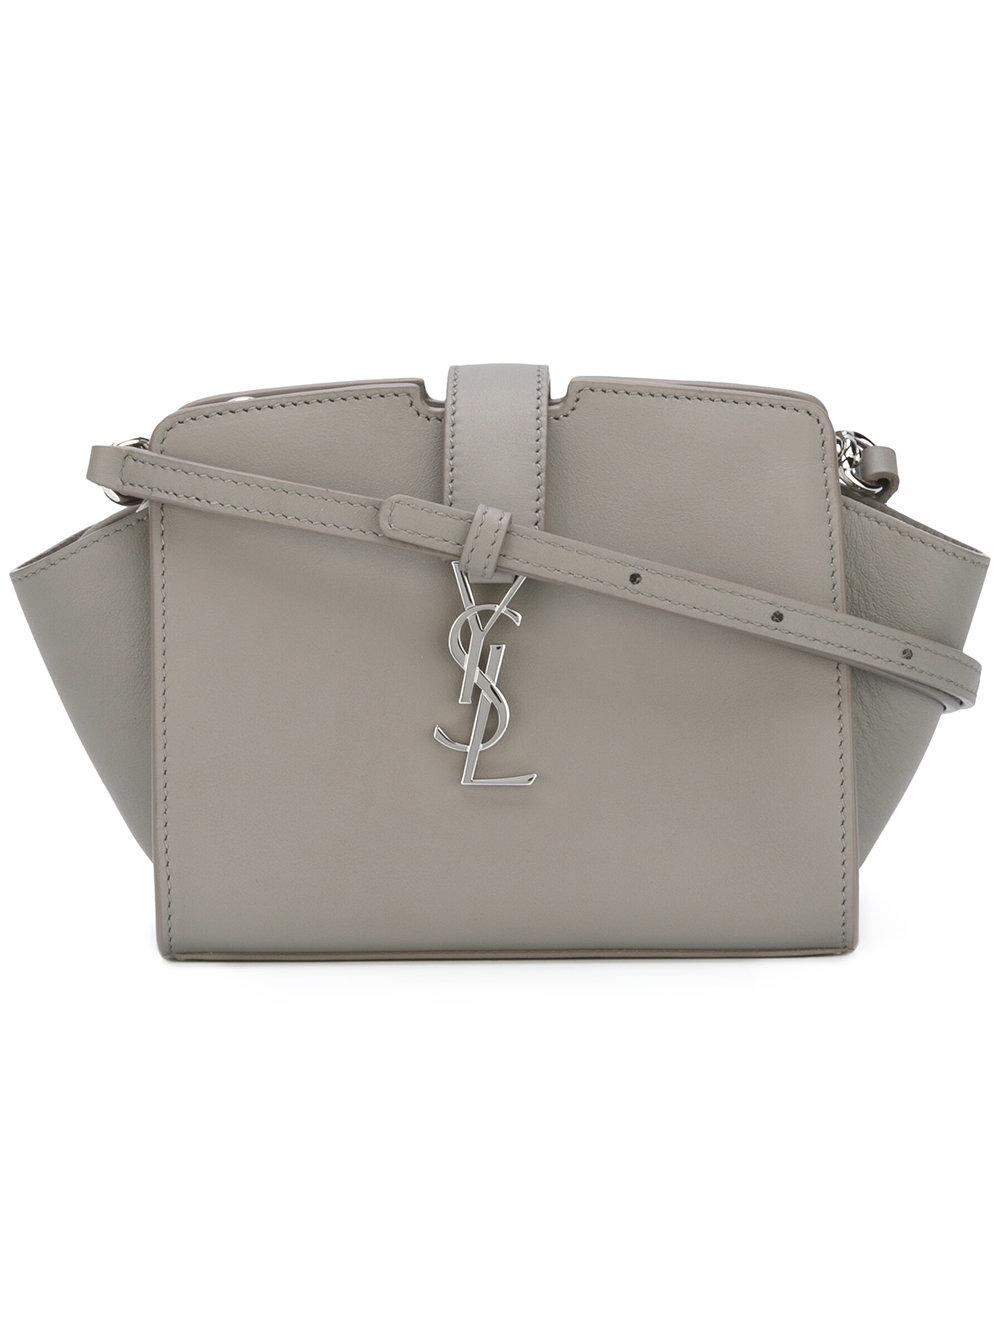 Saint Laurent Toy Ysl Cabas Crossbody Bag In Gray Lyst